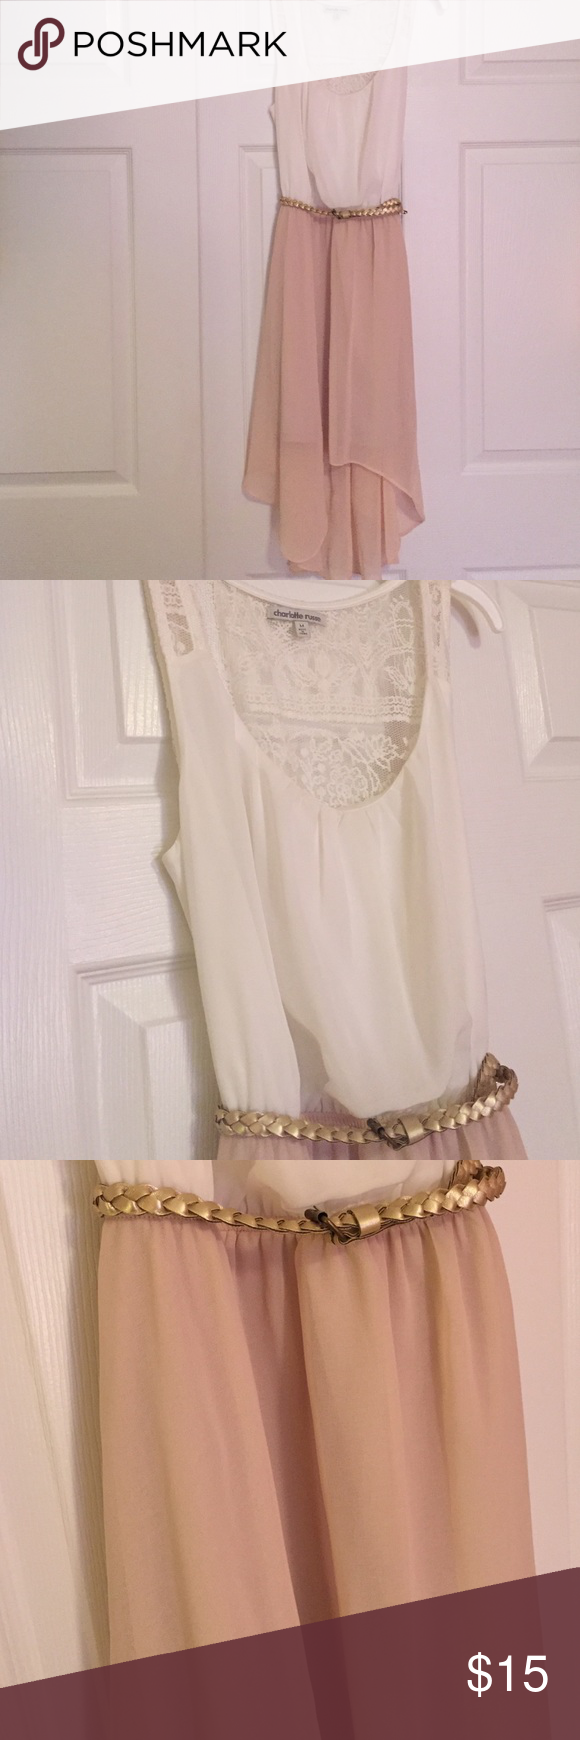 WORN TWICE Charlotte Russe high-low dress White too with lace back, gold belt and pale pink high-low skirt. Perfectly new condition Charlotte Russe Dresses High Low